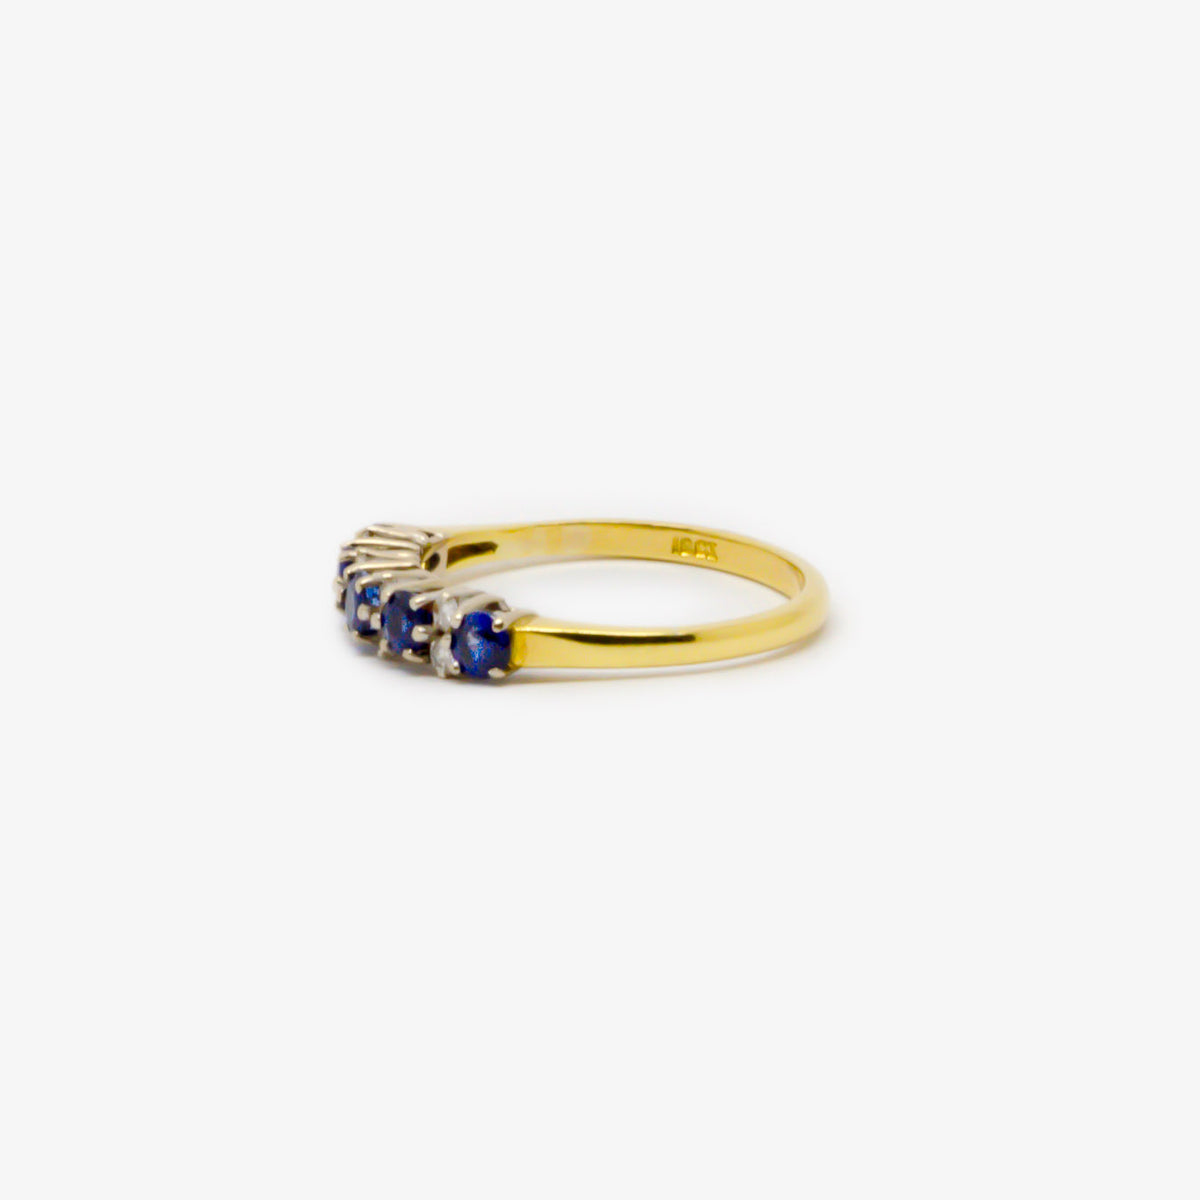 Antique Thirteen Stone Sapphire & Diamond Gold Ring